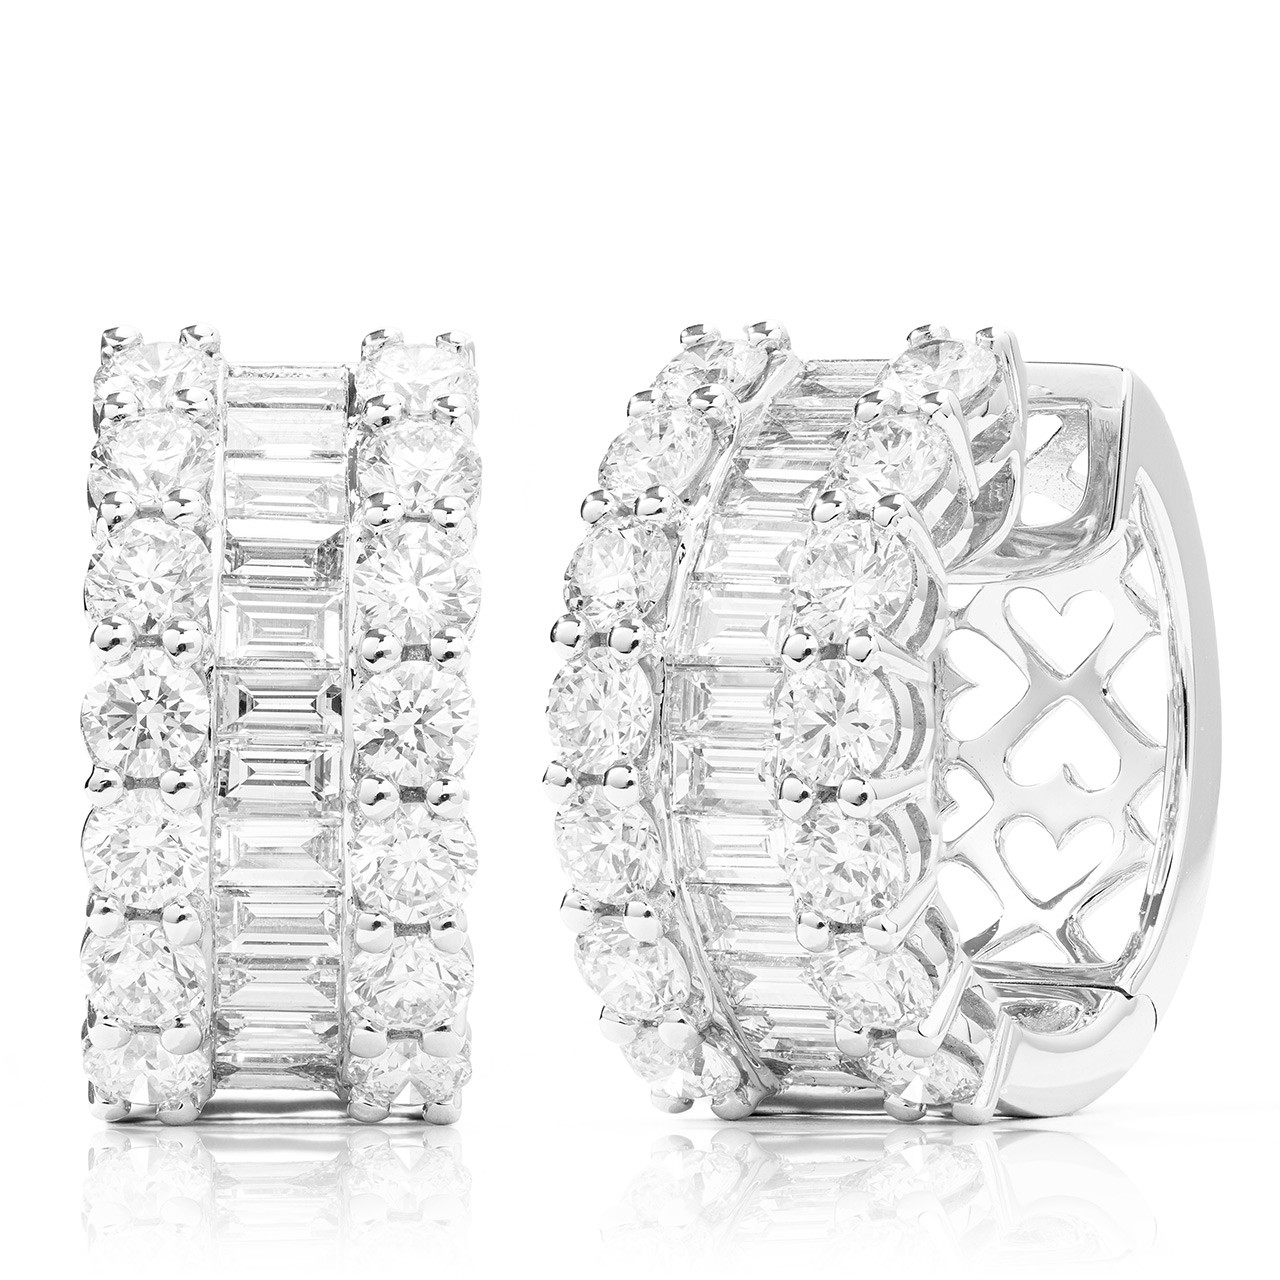 2c088a5715b6e By Photo Congress || Baguette Diamond Hoop Earrings